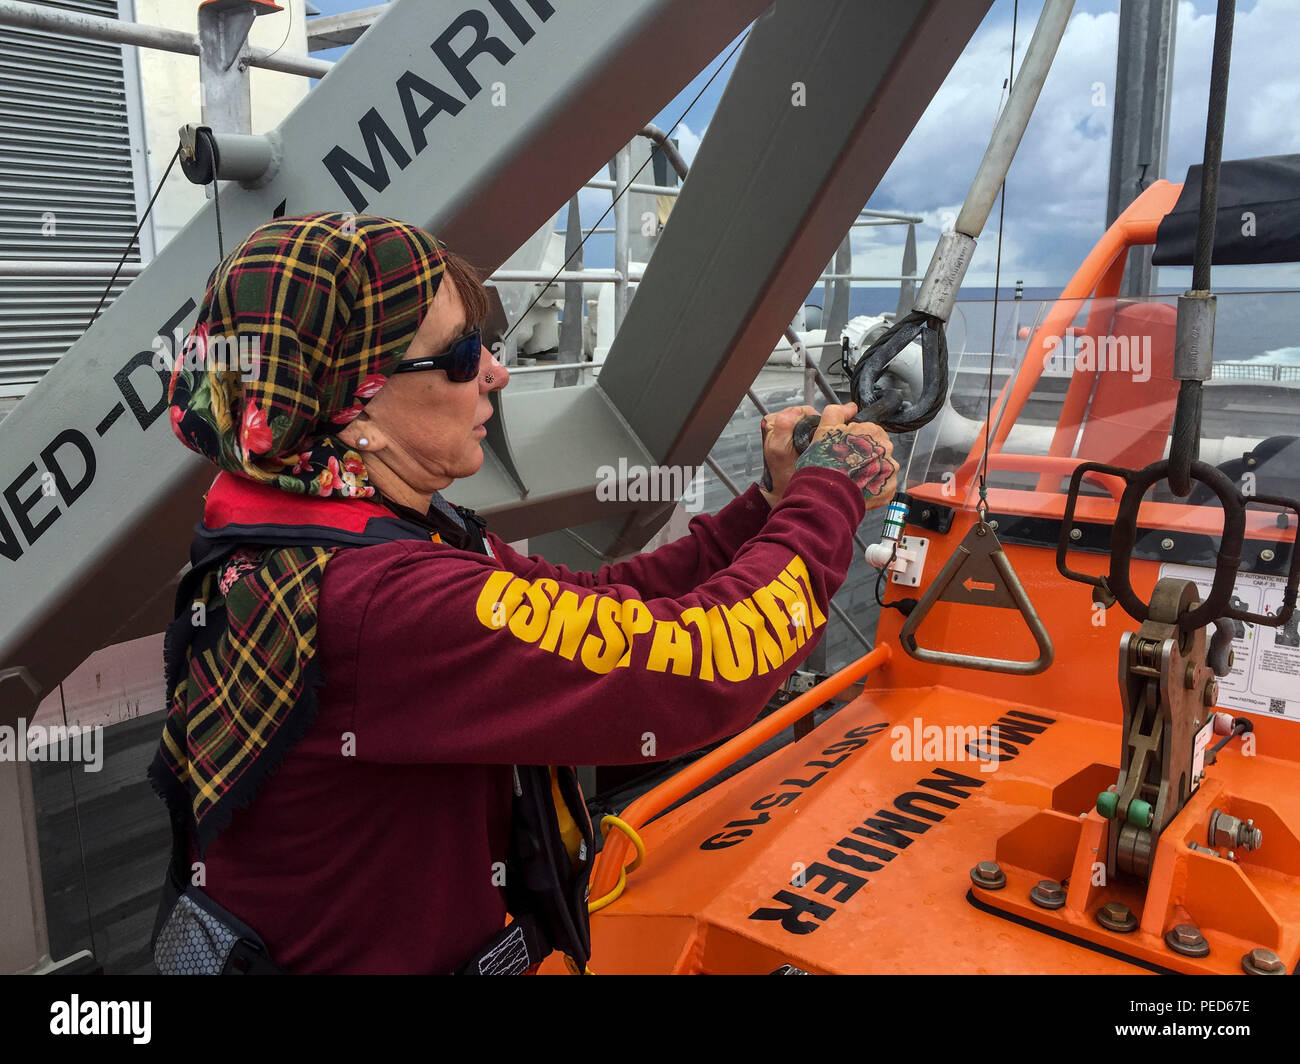 150803-M-GO800-044 PACIFIC OCEAN (Aug. 3, 2015) – Civilian Mariner Shannon Alves tightens the chains holding vehicles aboard the Military Sealift Command joint high speed vessel USNS Millinocket (JHSV 3) Aug. 3. Alves is responsible for the upkeep and maintenance of all the equipment aboard the Millinocket. Task Force Forager, embarked aboard the Millinocket is serving as the secondary platform for Pacific Partnership, led by an expeditionary command element from the Navy's 30th Naval Construction Regiment (30 NCR) from Port Hueneme, Calif. Now in its 10th iteration, Pacific Partnership is the - Stock Image